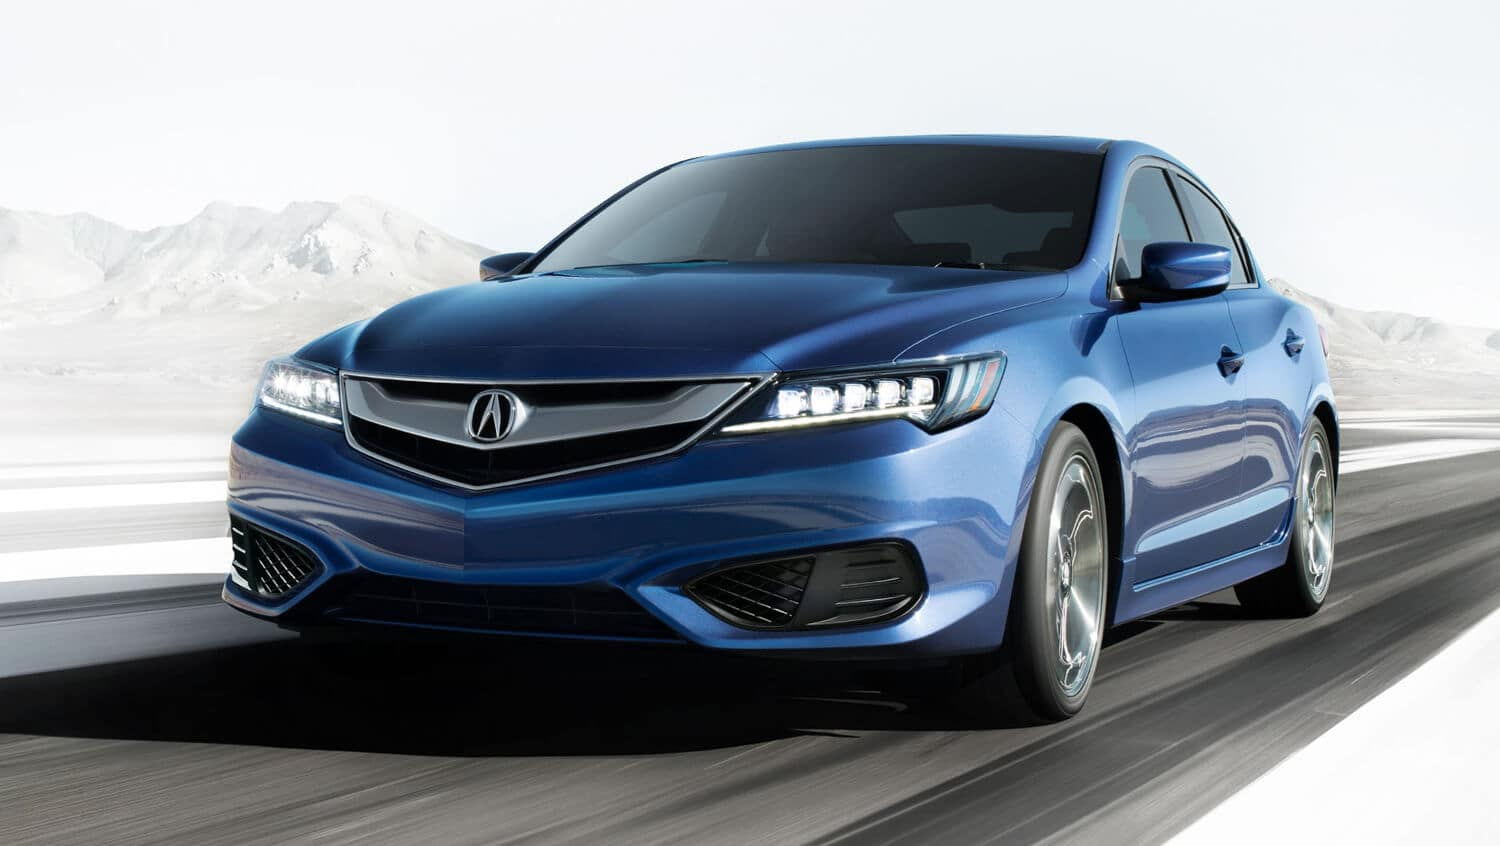 2018 Acura ILX Exterior Front Angle Driver Side